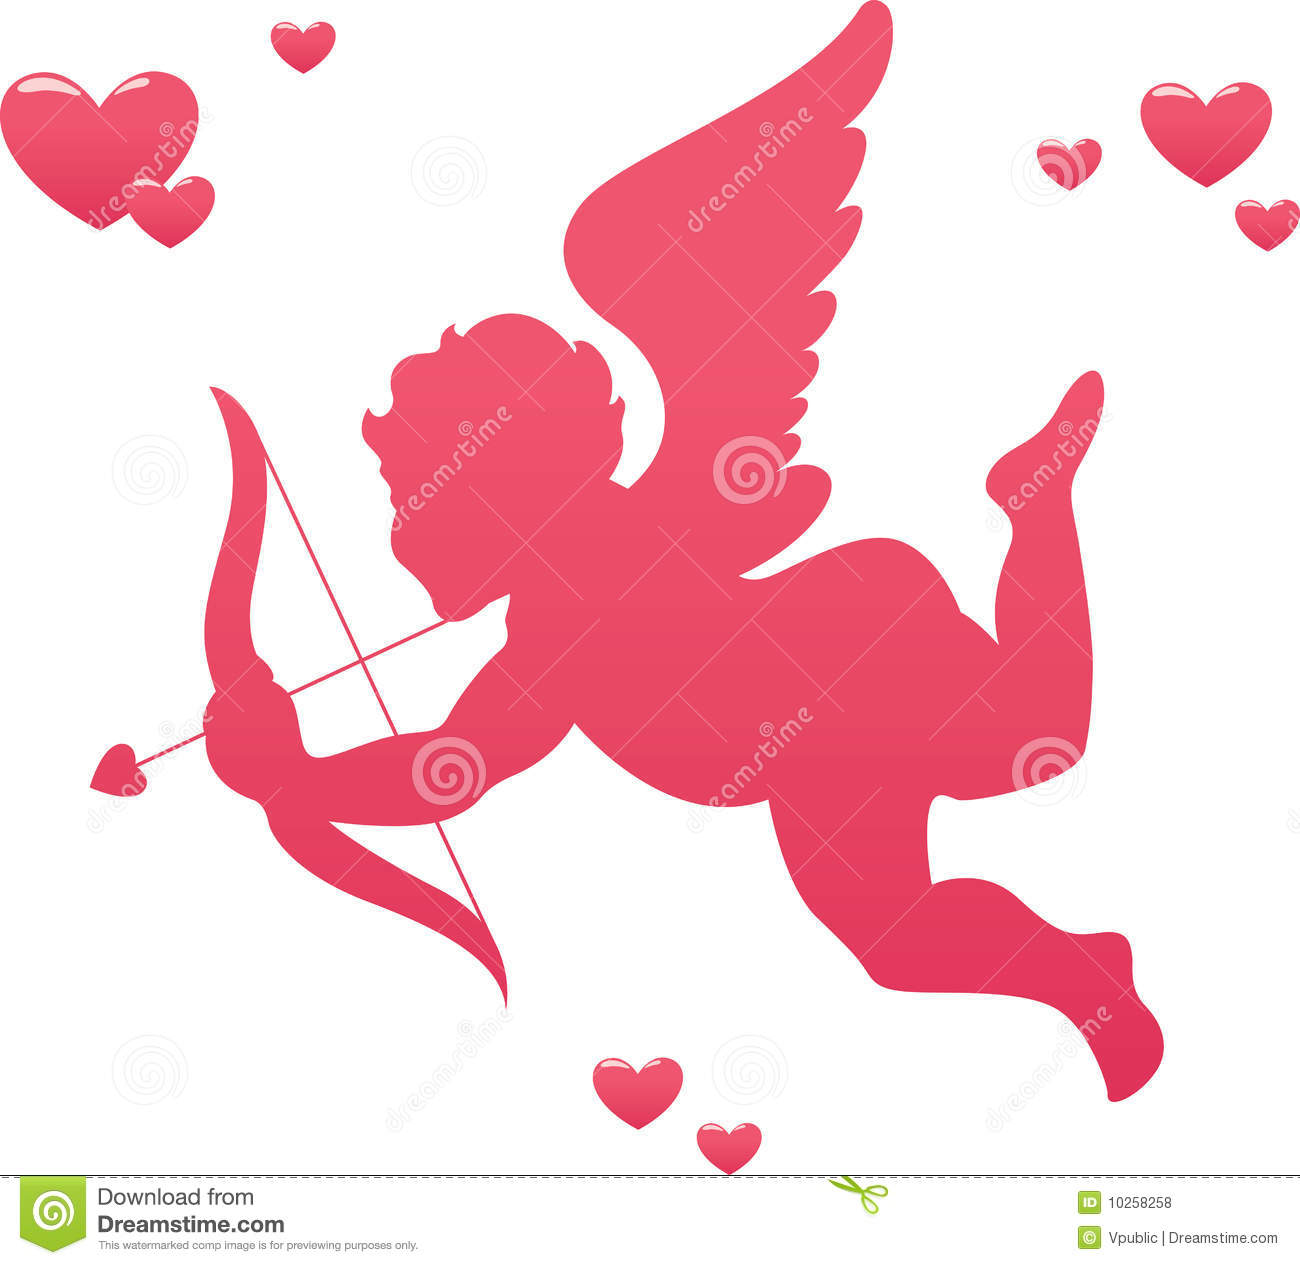 Hispanic cupid